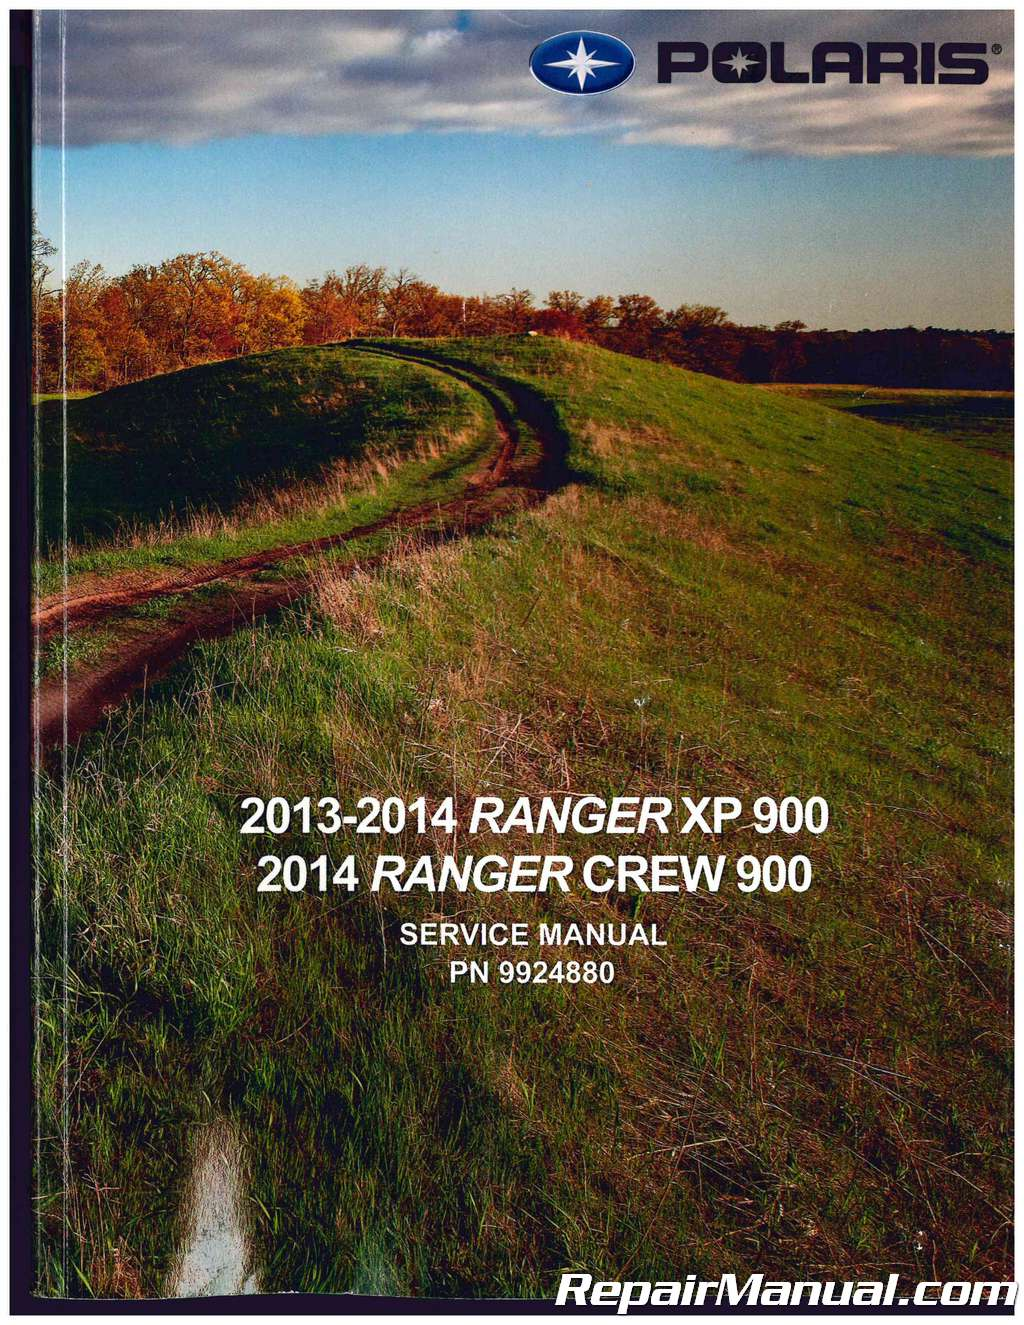 hight resolution of 2013 2014 polaris ranger xp 900 2014 ranger crew 900 side by side service manual